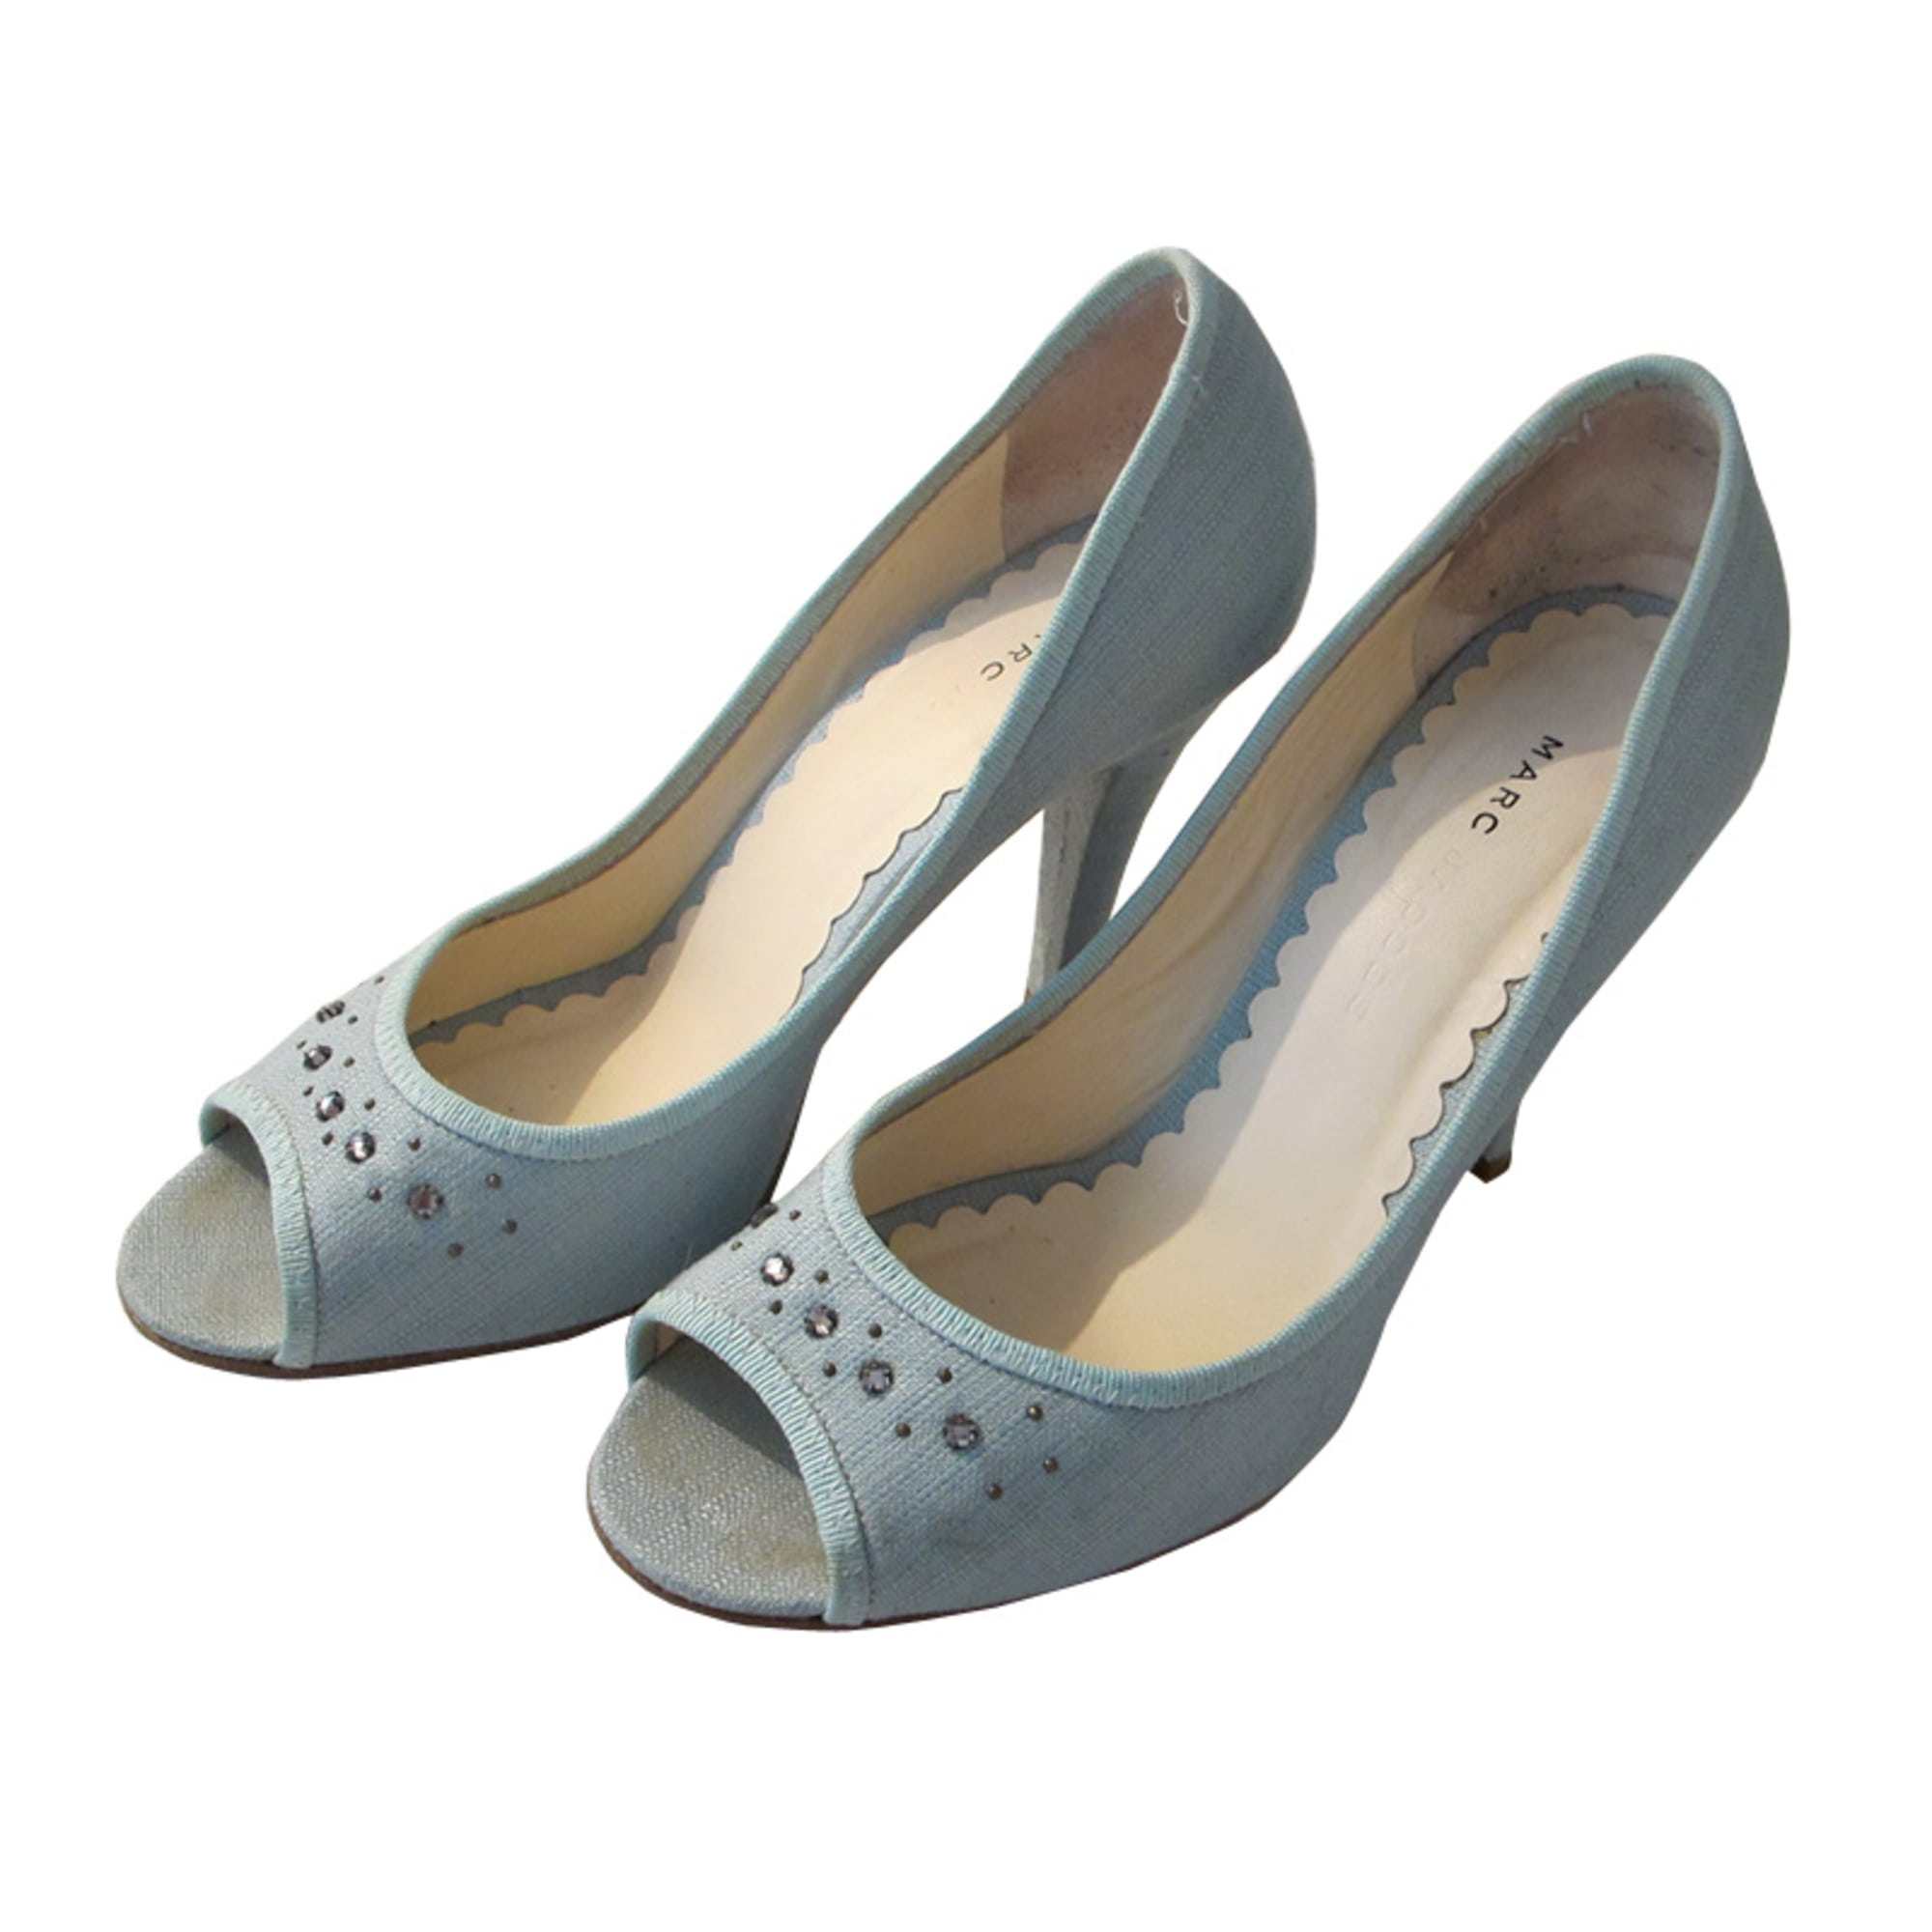 Peep-Toe Pumps MARC JACOBS Blue, navy, turquoise